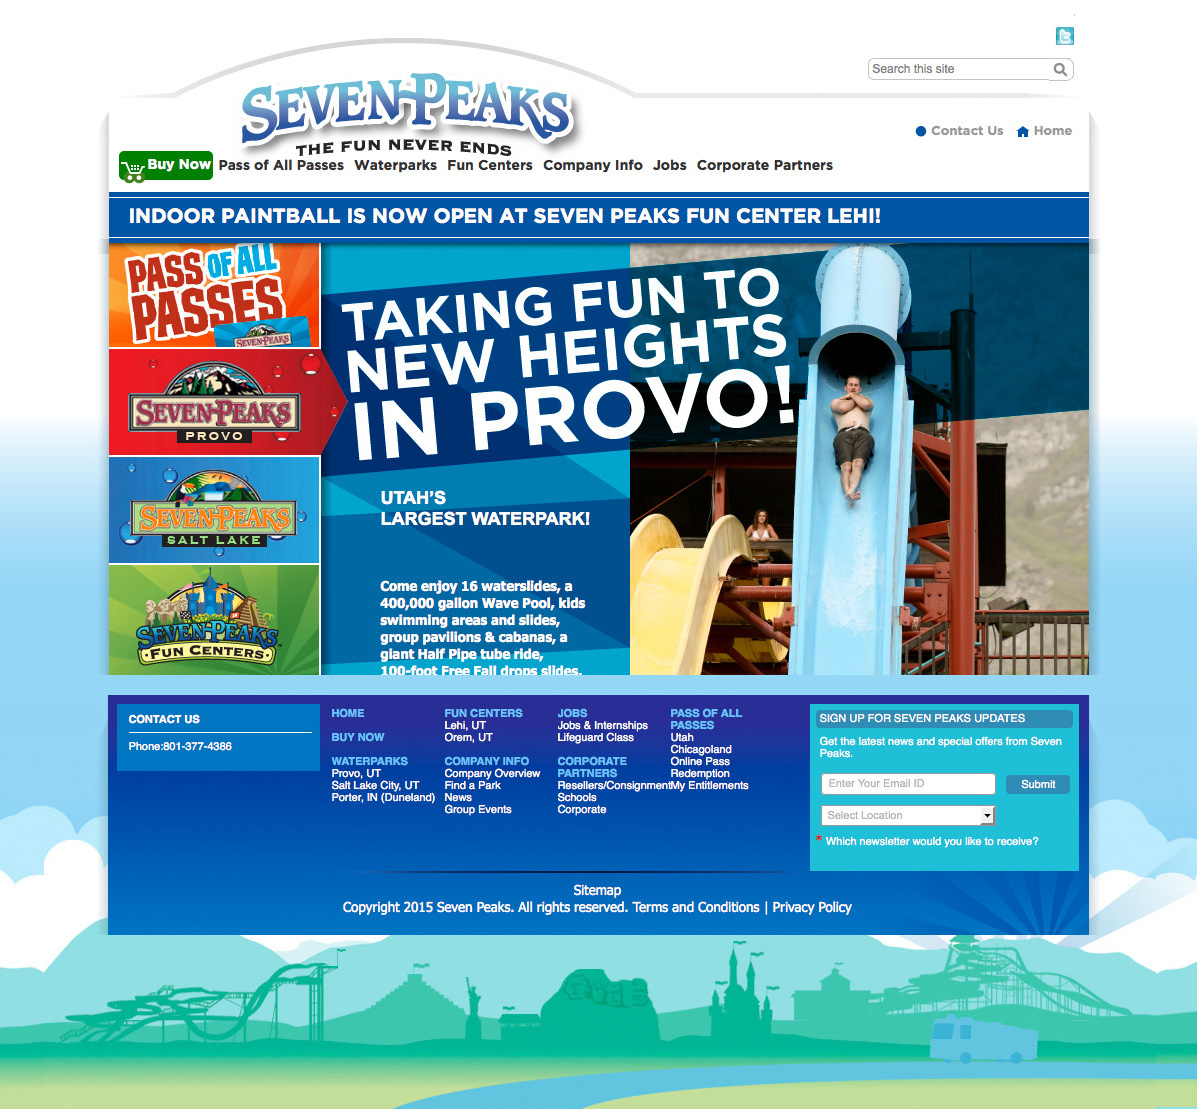 Seven Peaks website design before